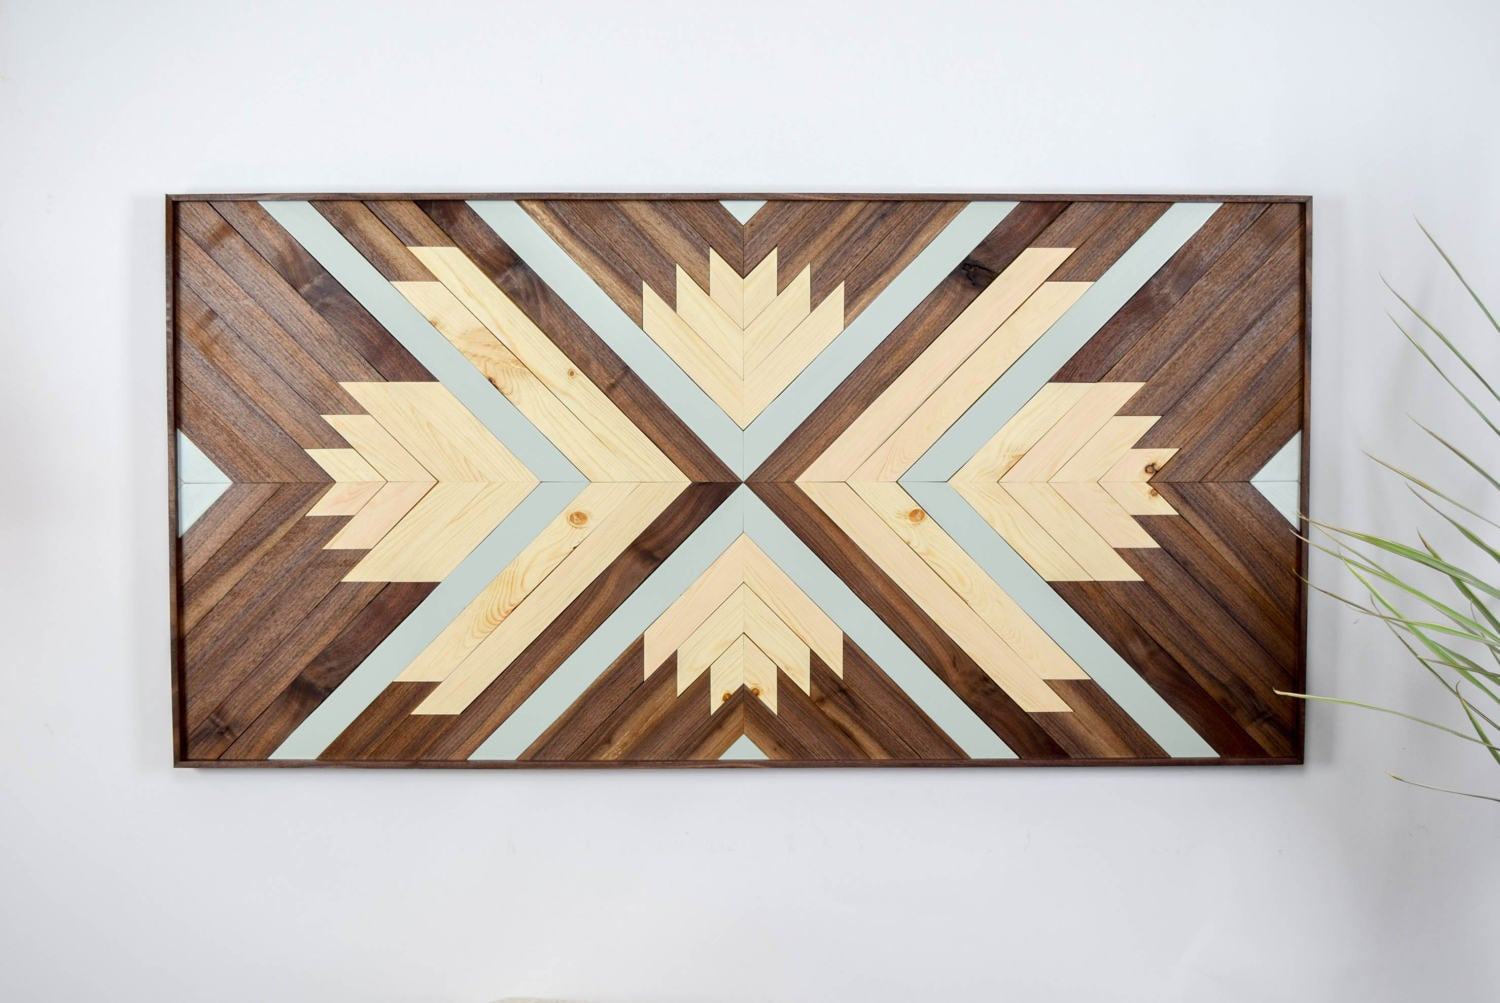 Best ideas about Geometric Wall Art . Save or Pin Wood Wall Art Wooden Wall Art Geometric Wood Art Wooden Now.